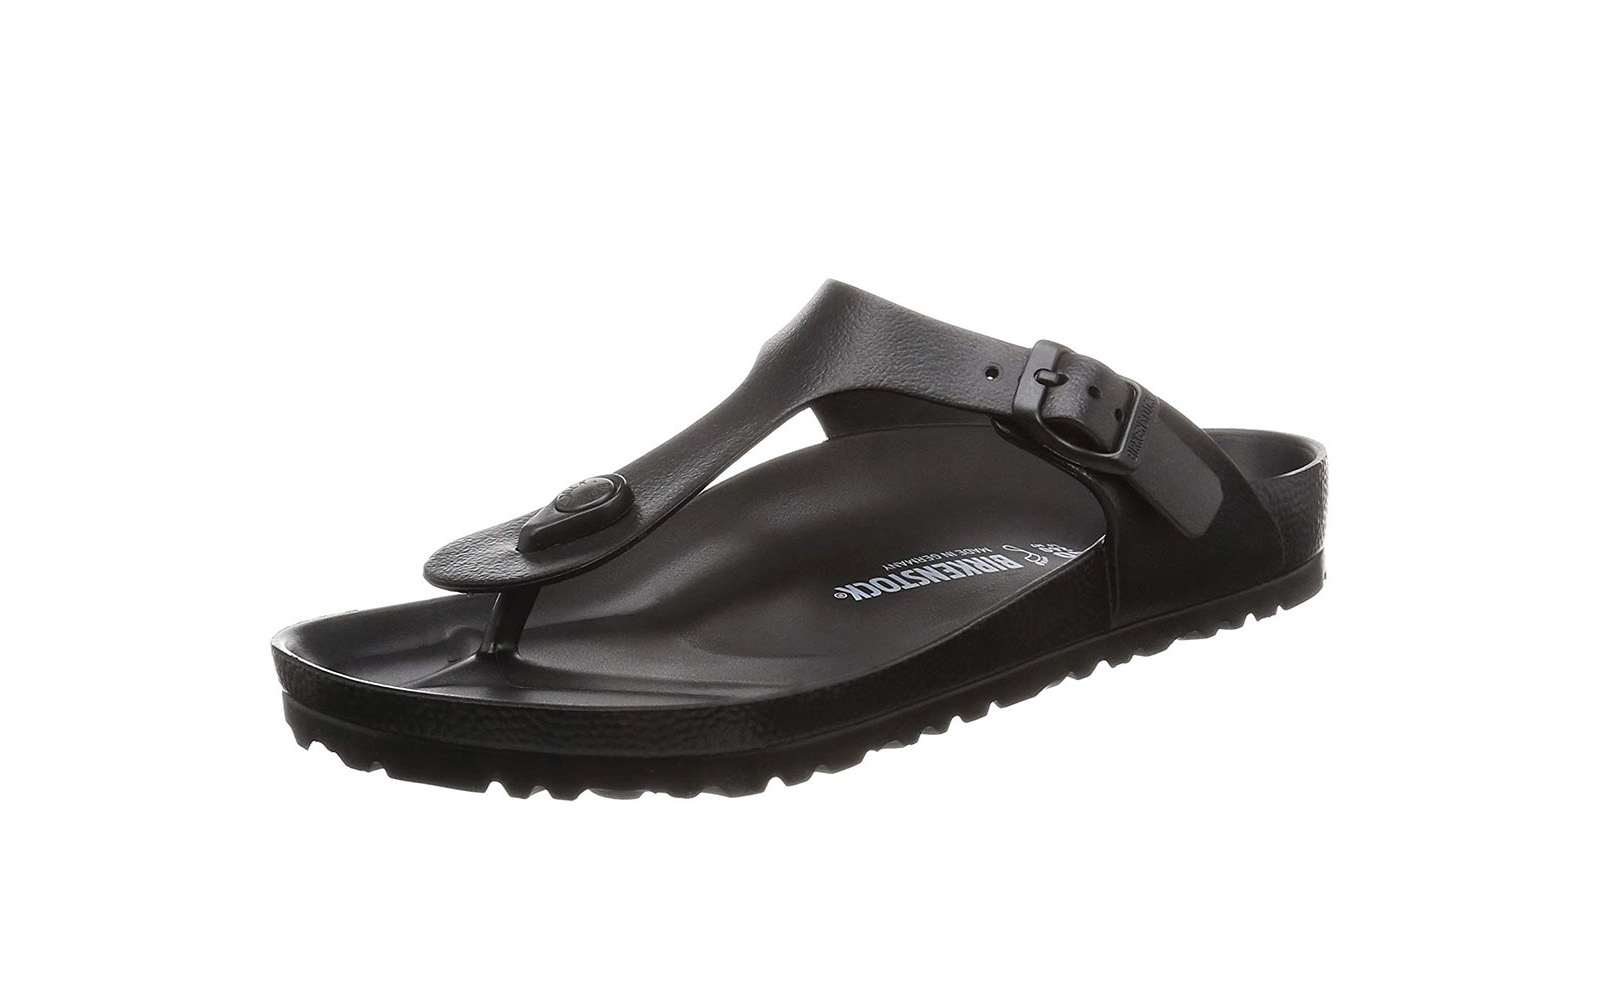 These comfy sandals are so popular, Amazon says sales have spiked 100,000 percent